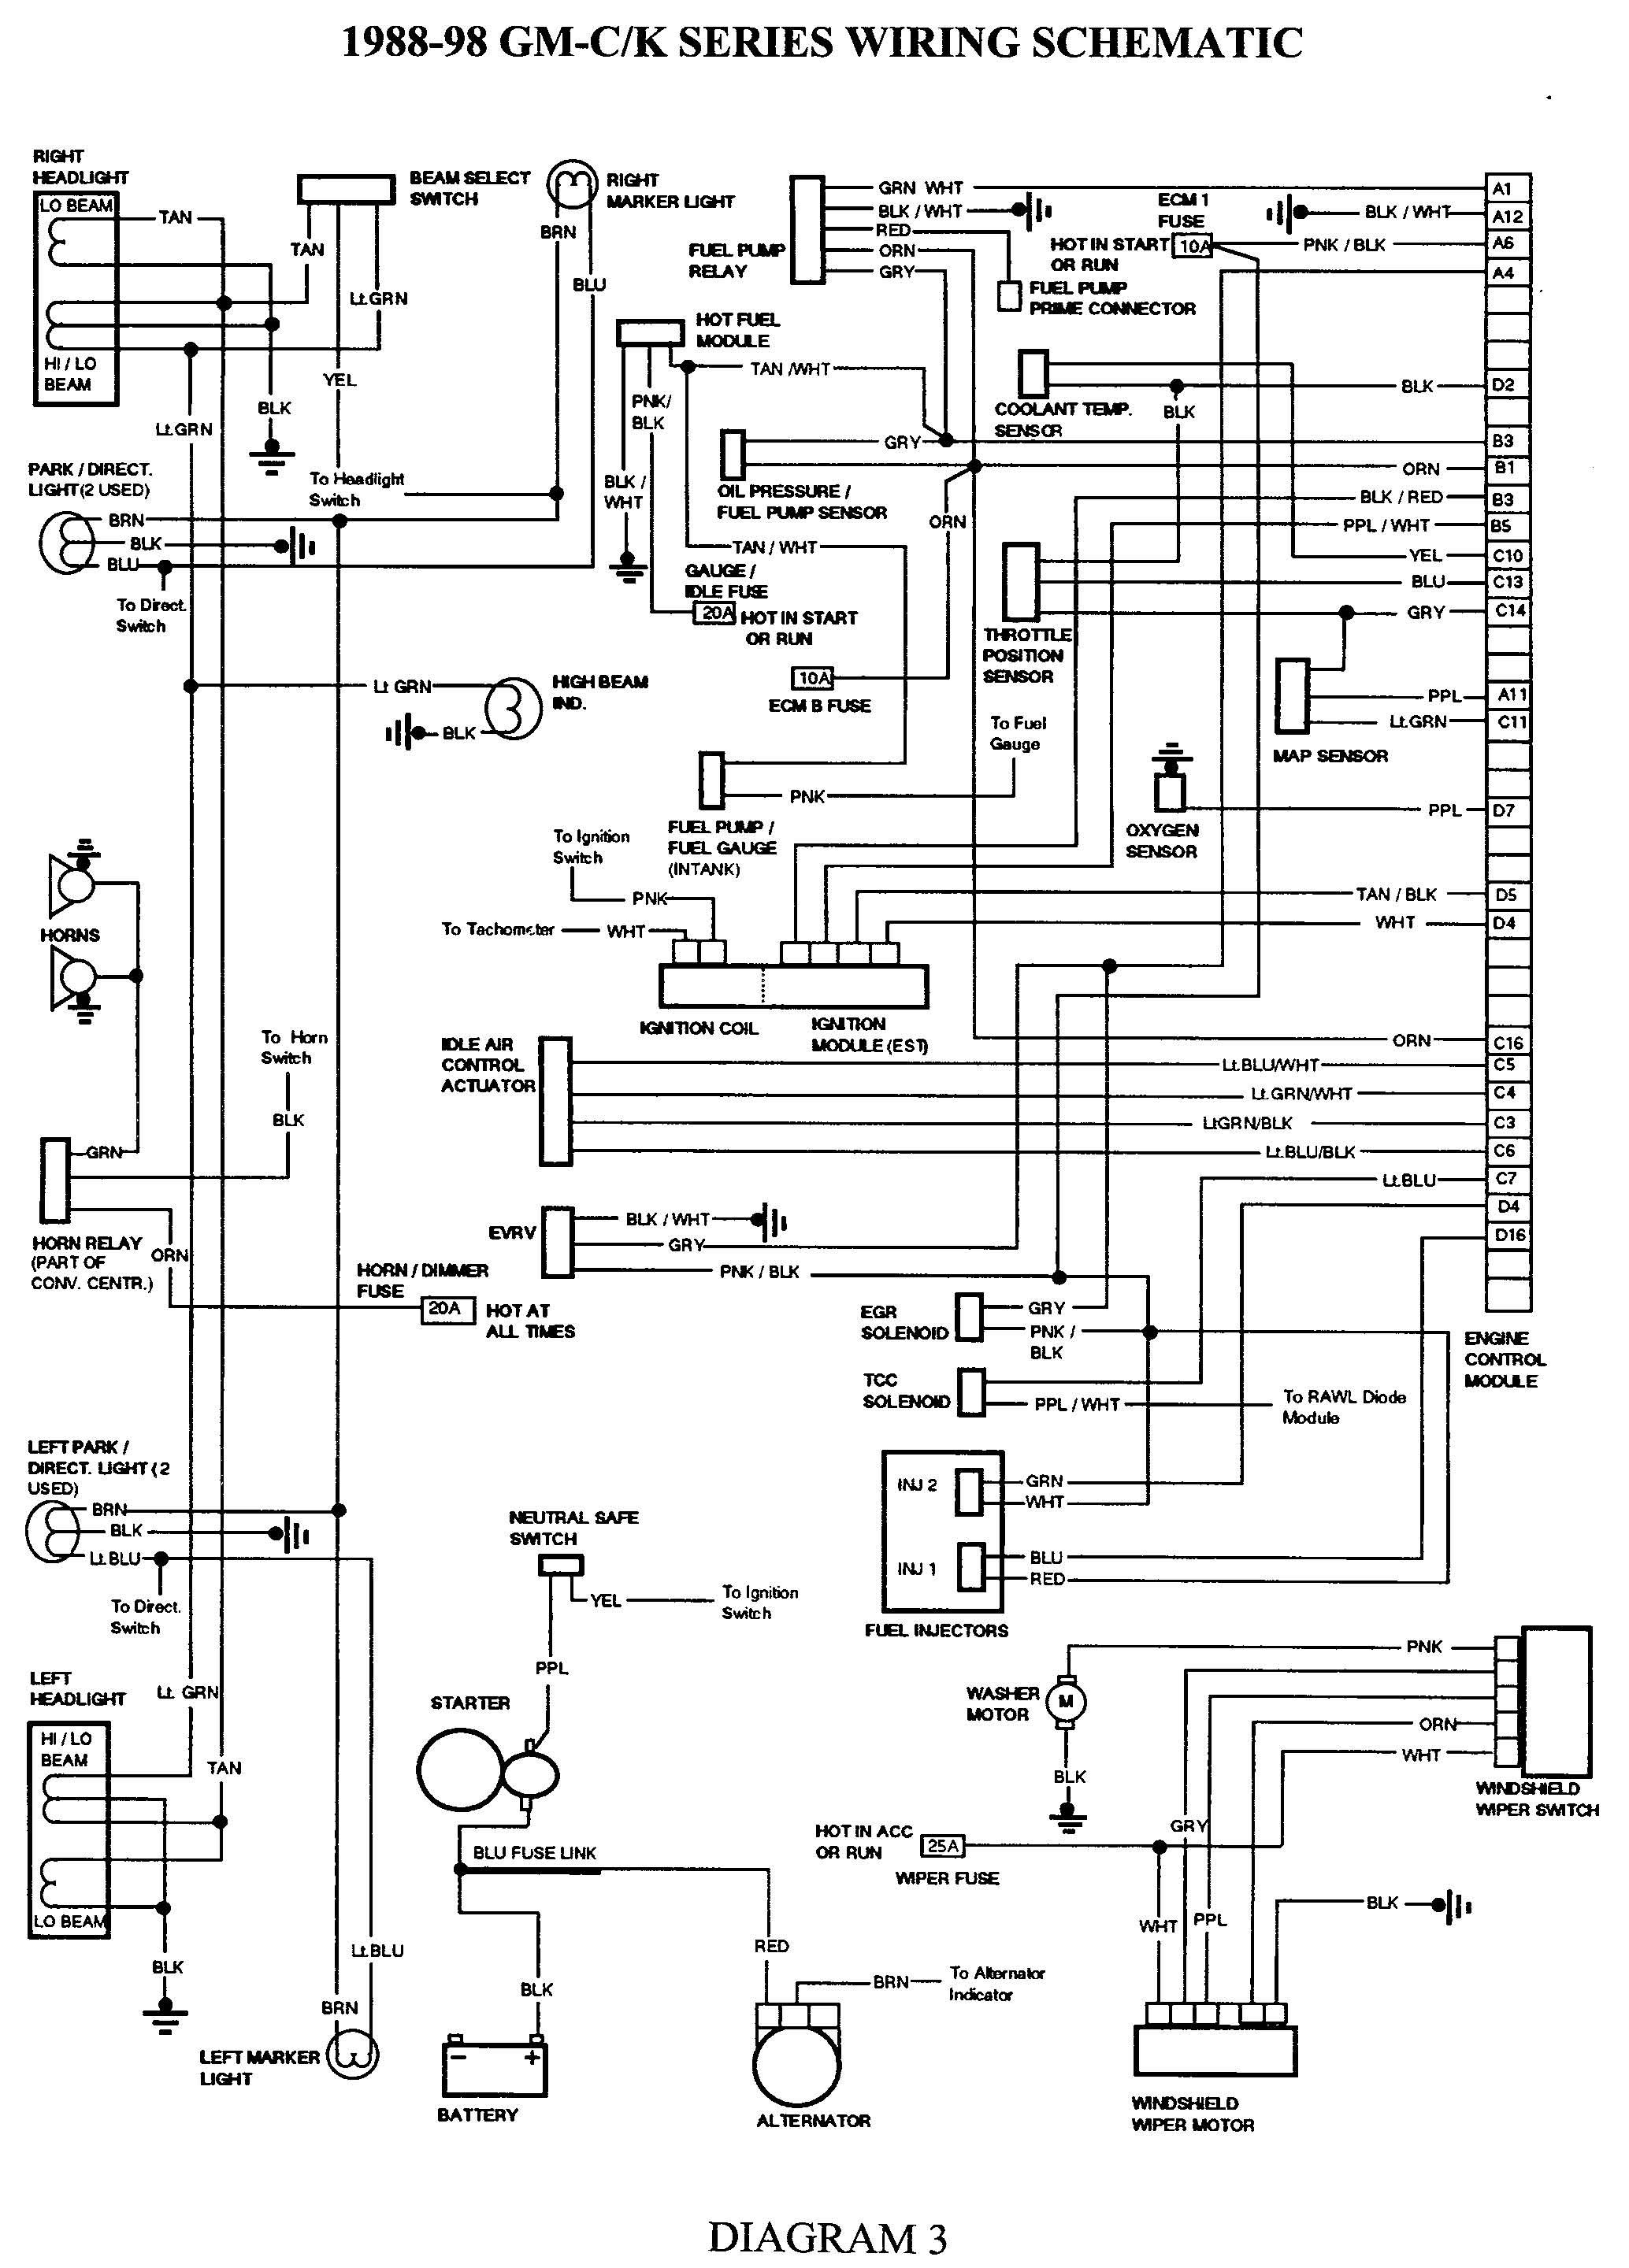 Pin on kc Ac Wiring Diagram Chevy Suburban on